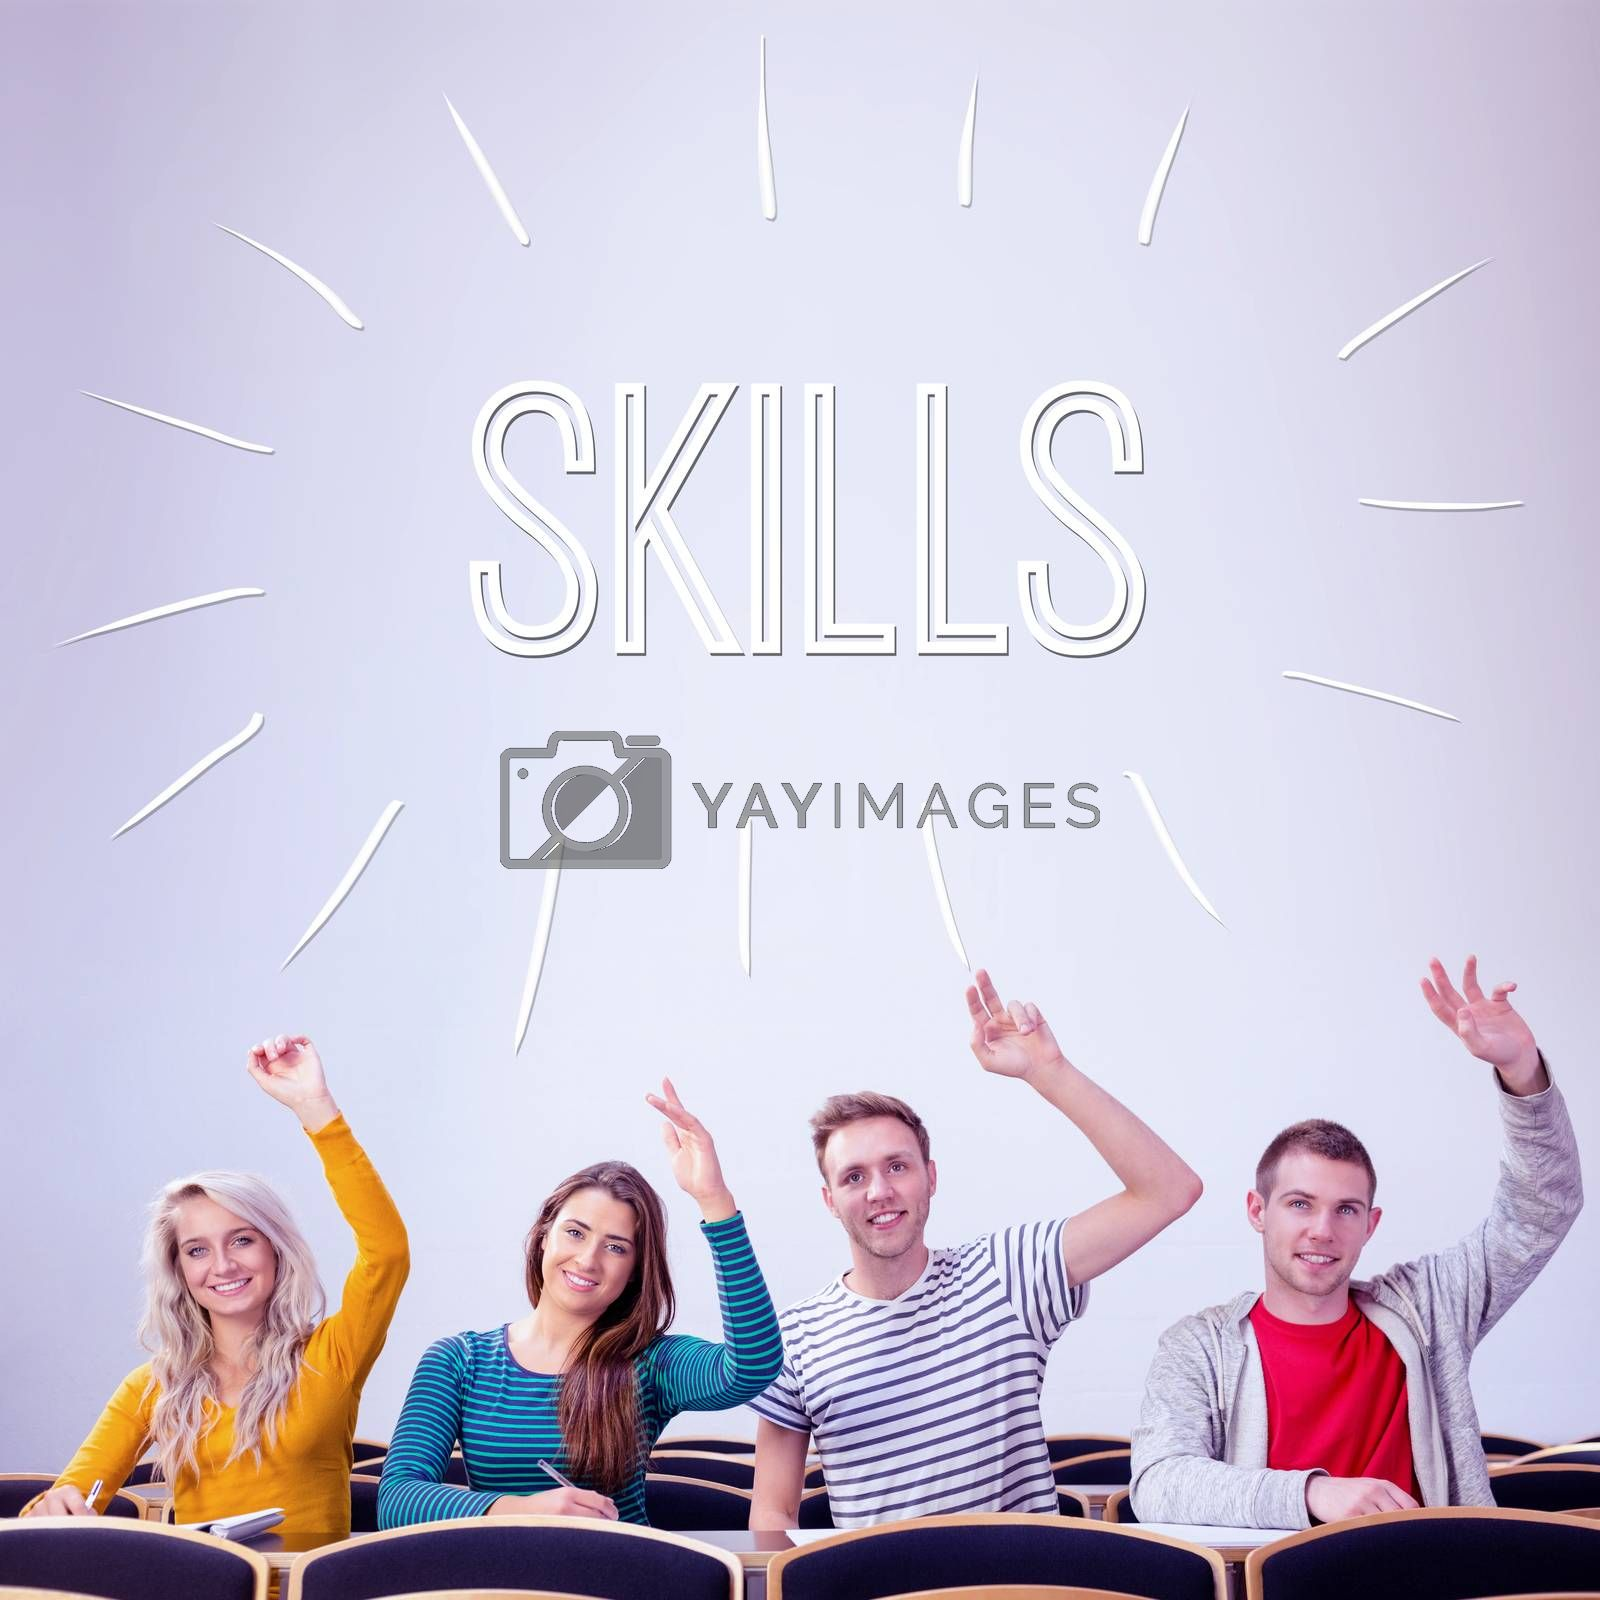 Skills against college students raising hands in the classroom by Wavebreakmedia